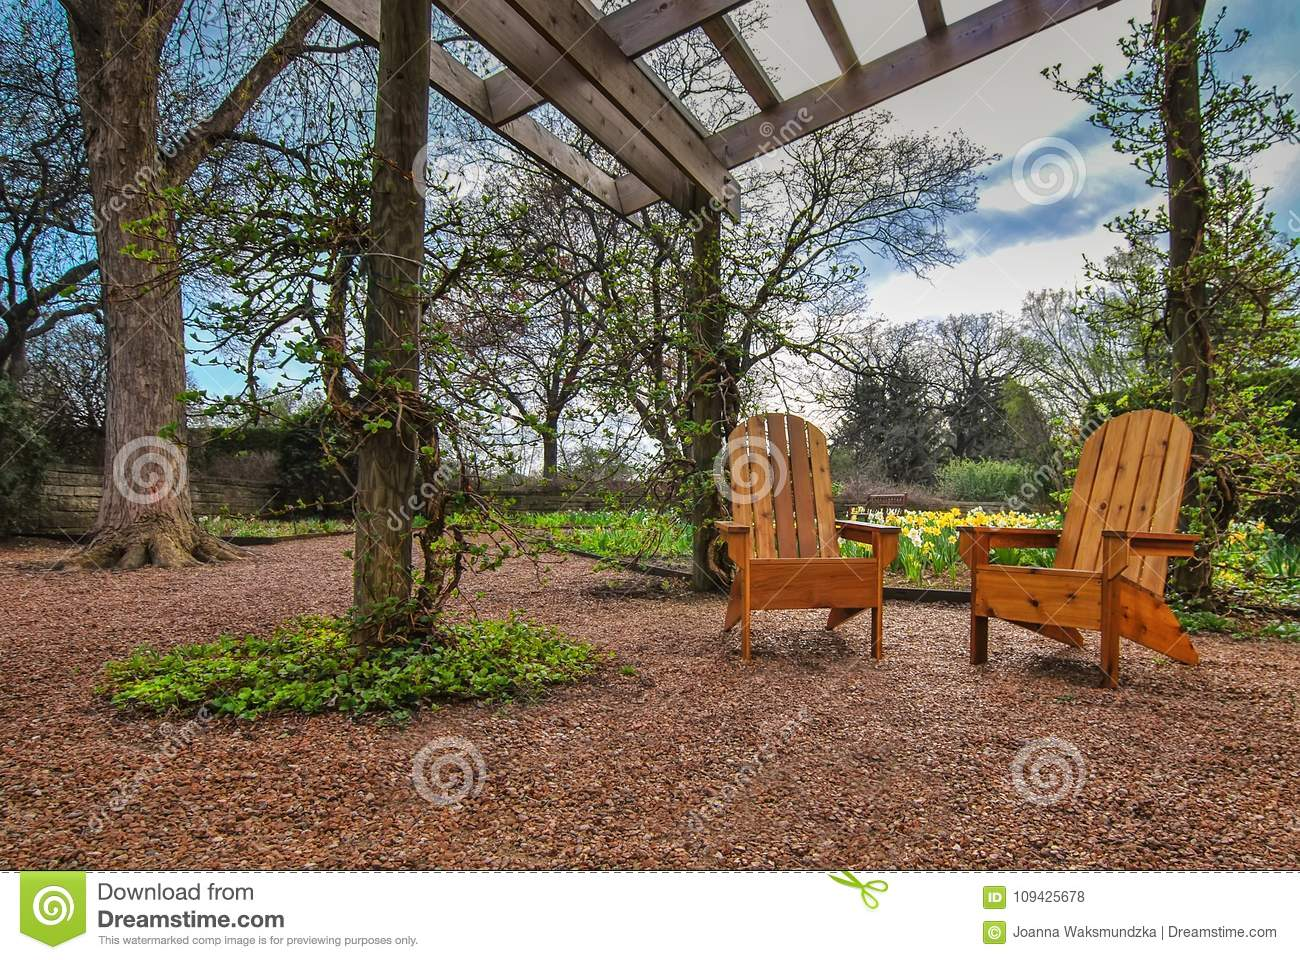 Gazebo Garden With Wooden Chairs Stock Photo - Image of plants ...